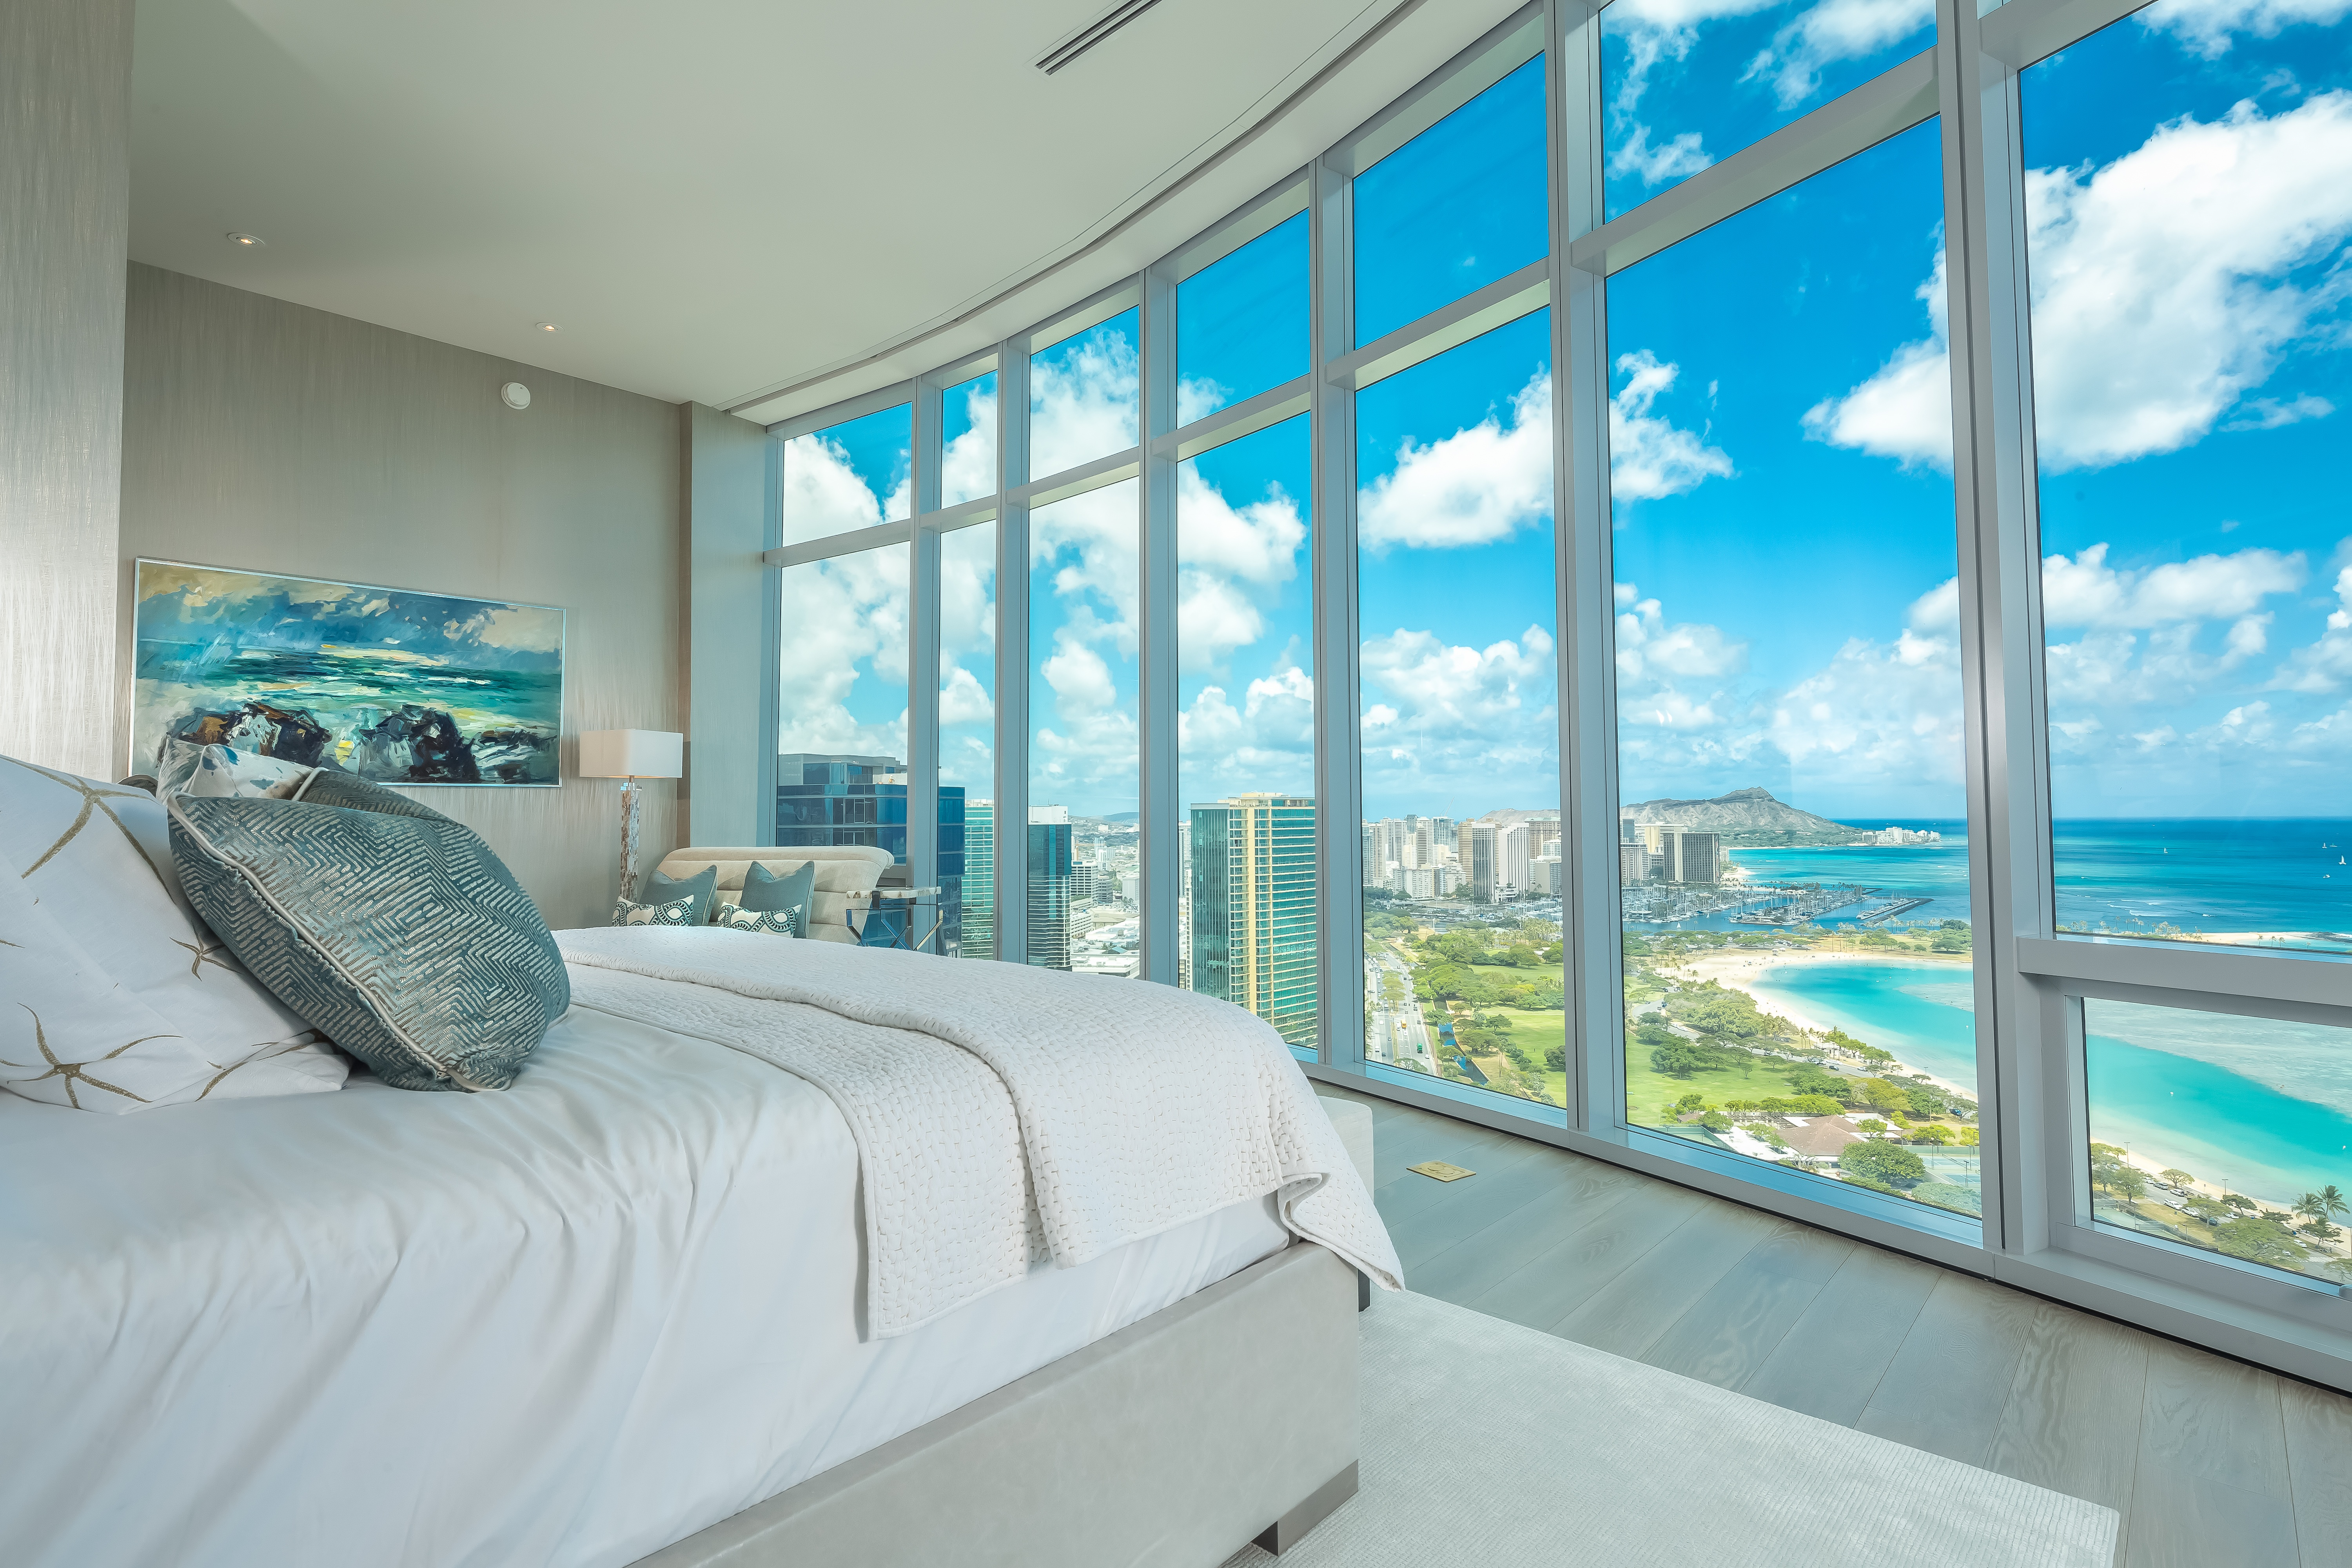 Acclaimed Interior Designer Tony Ingrao Is Situated In The Most Exclusive Tower Residence Hawaii And Rivals Great Penthouses Across Globe